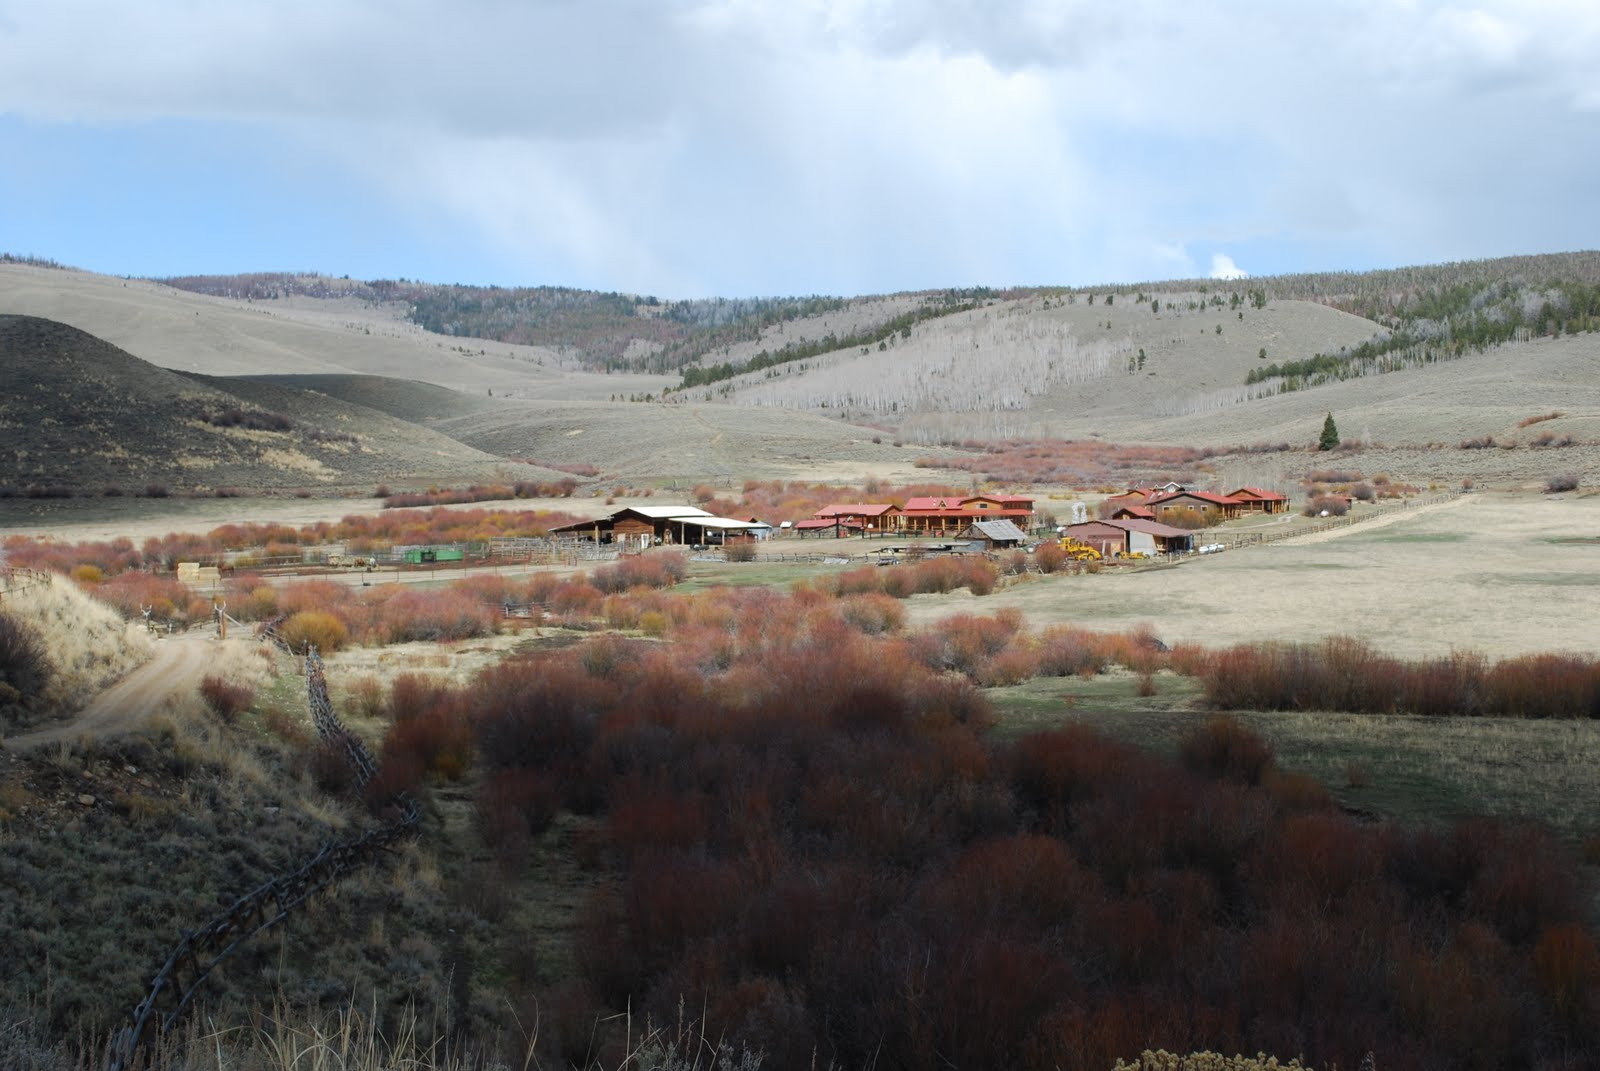 Pinedale, Wyoming |Pinedale Wyoming